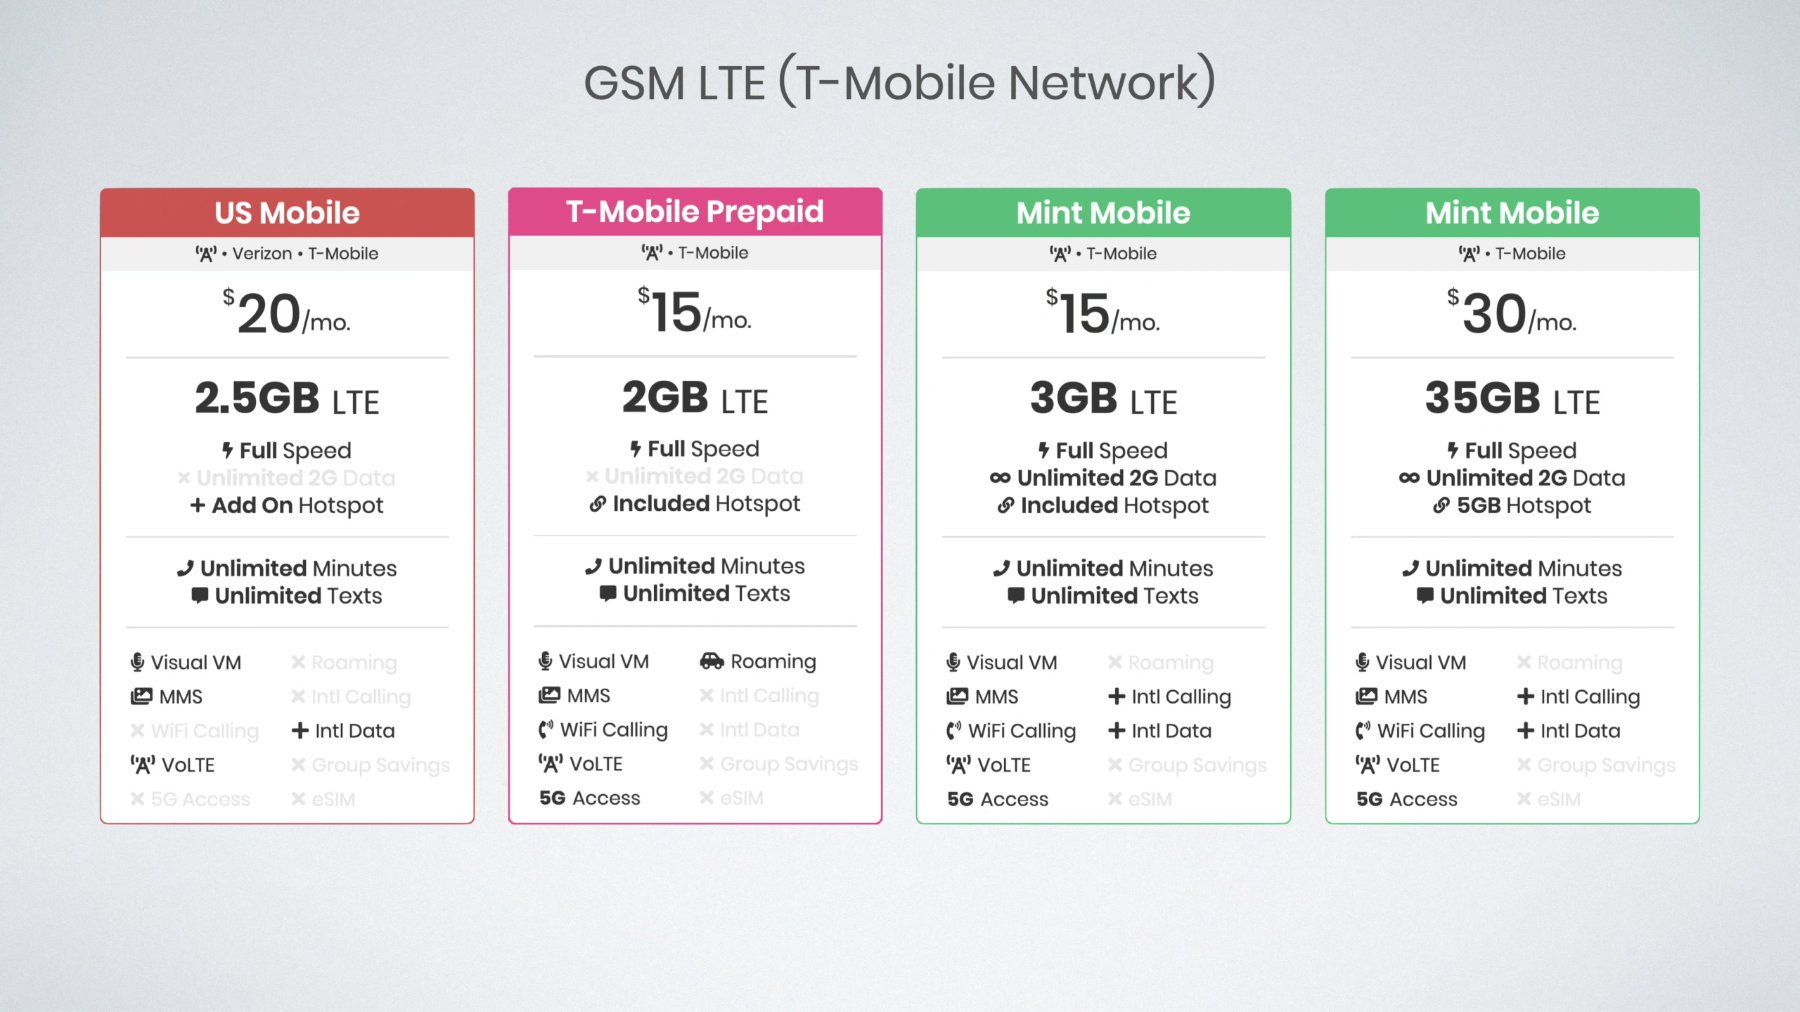 comparison between US Mobile, T-Mobile Connect, and Mint Mobile plans